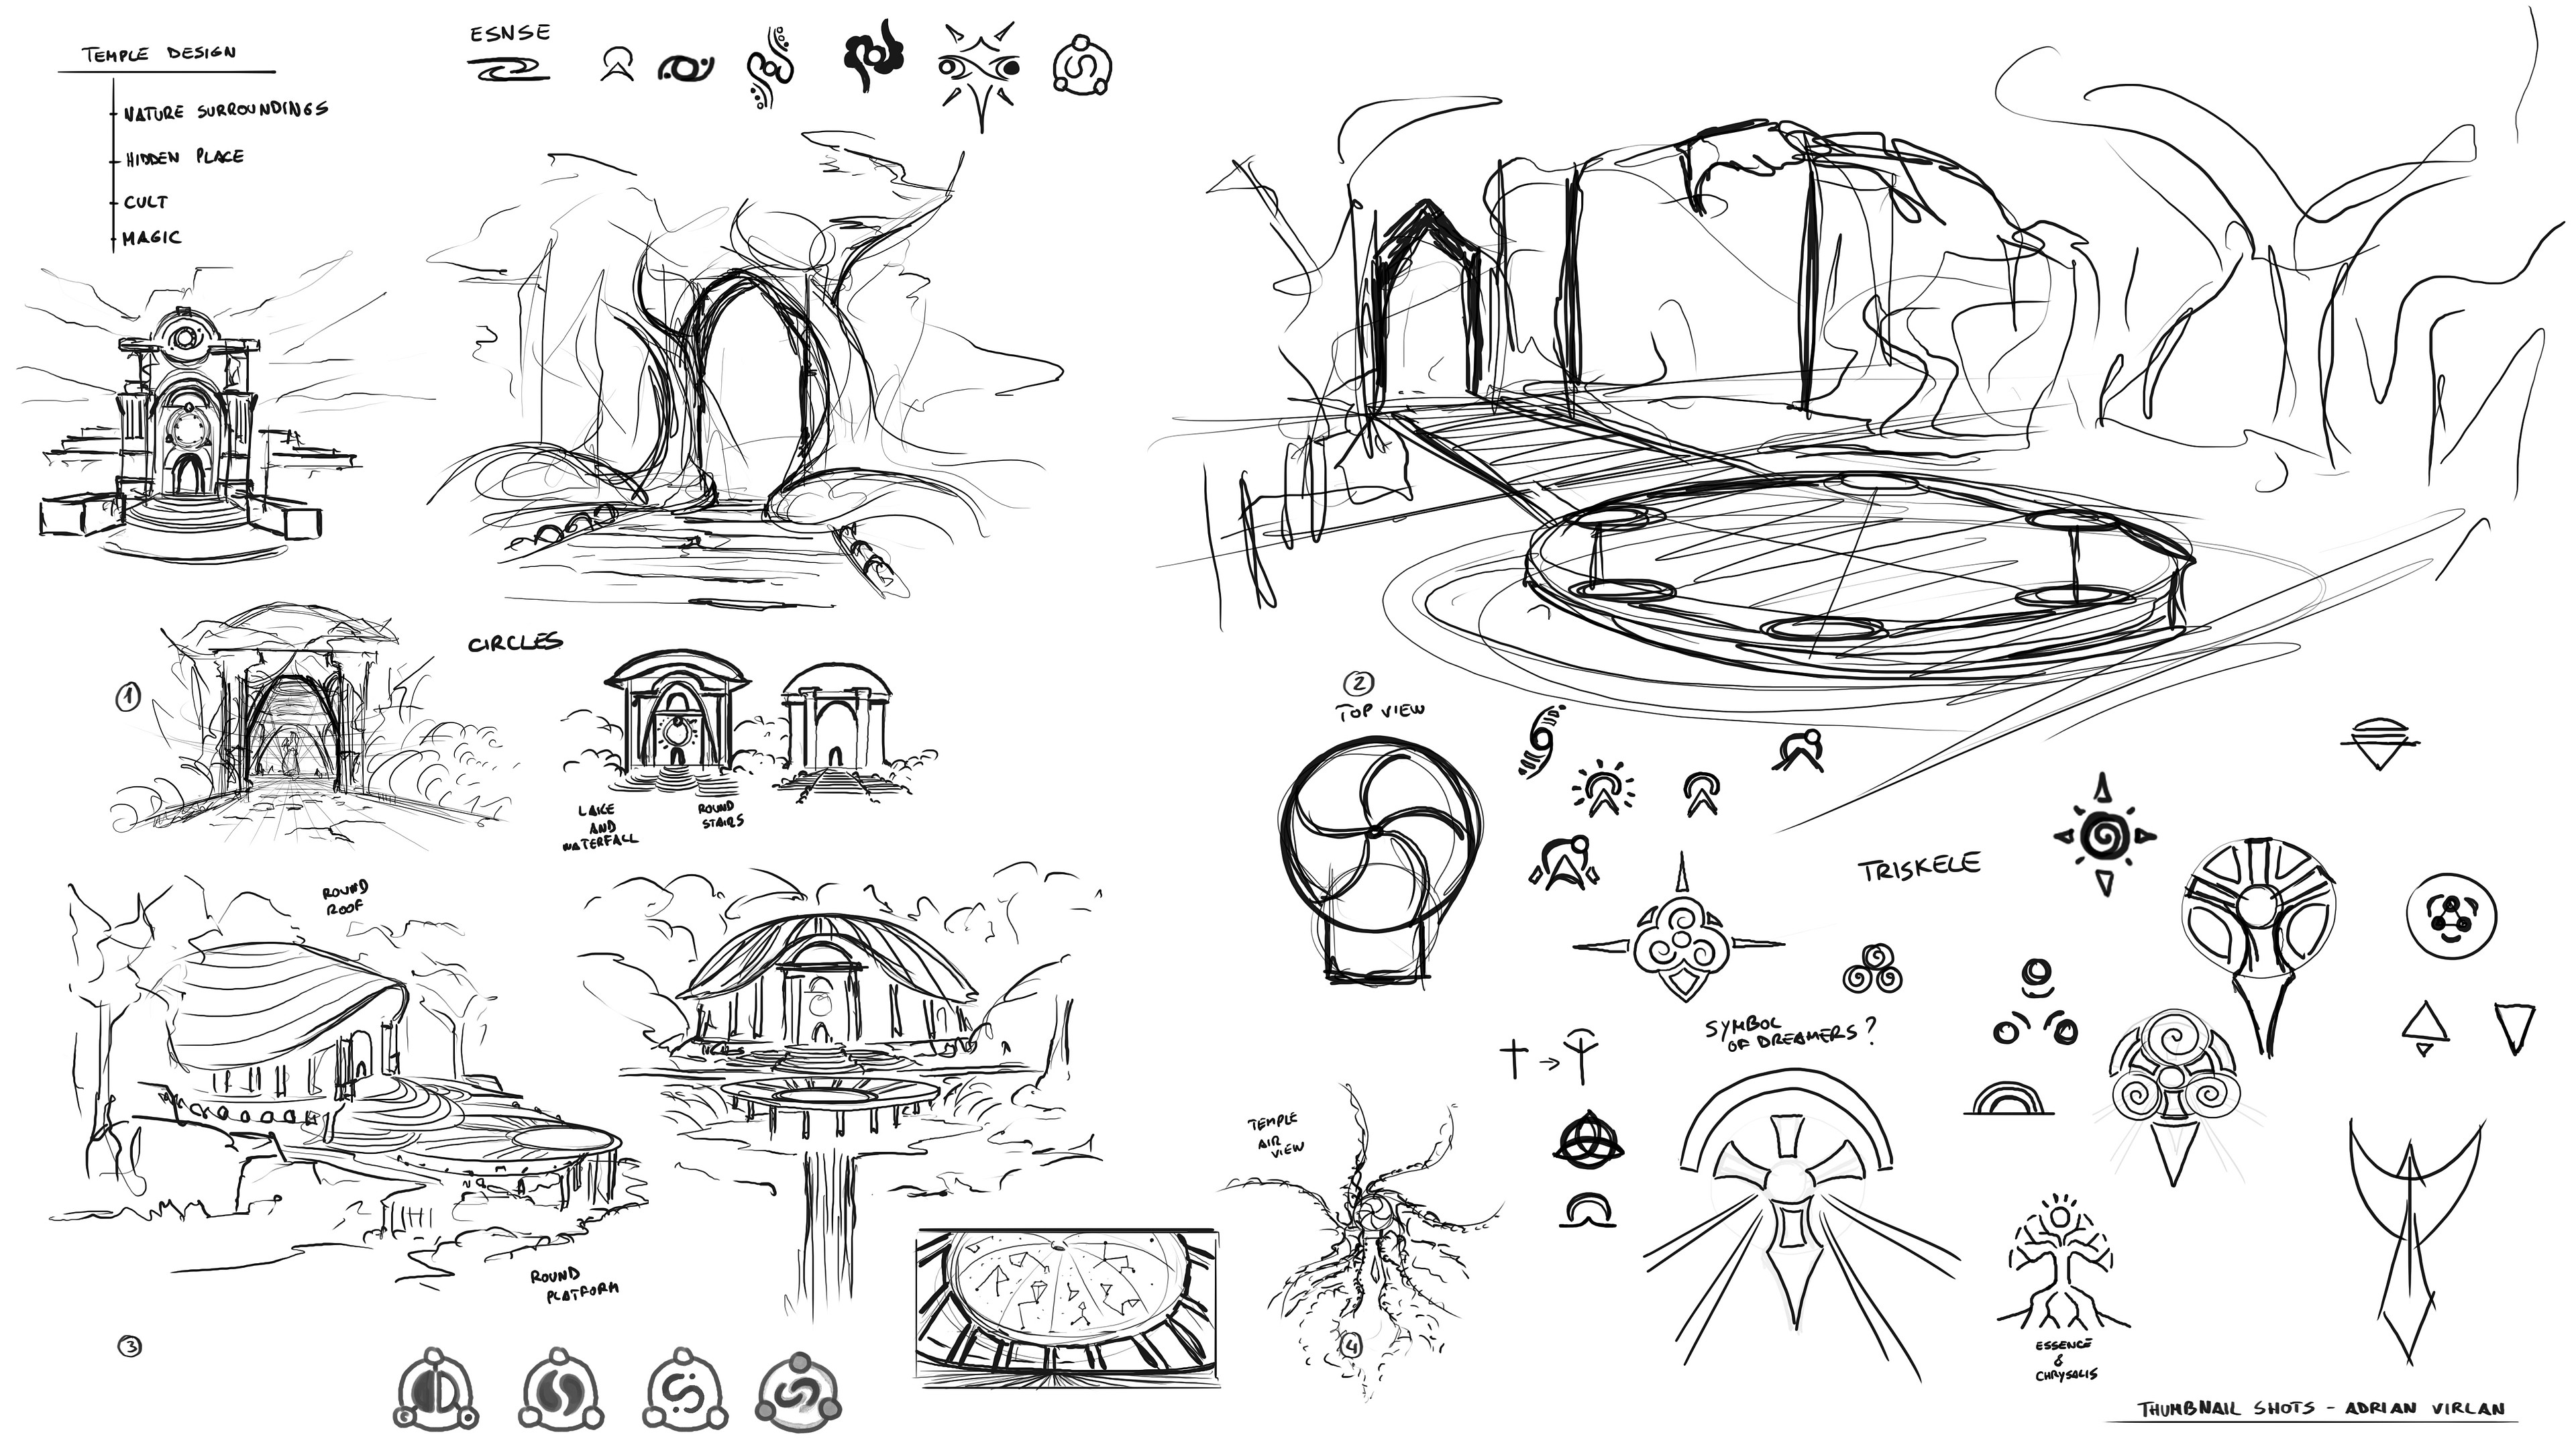 Dirtiest sketches figuring out symbols and surroundings of the ancient temple area.